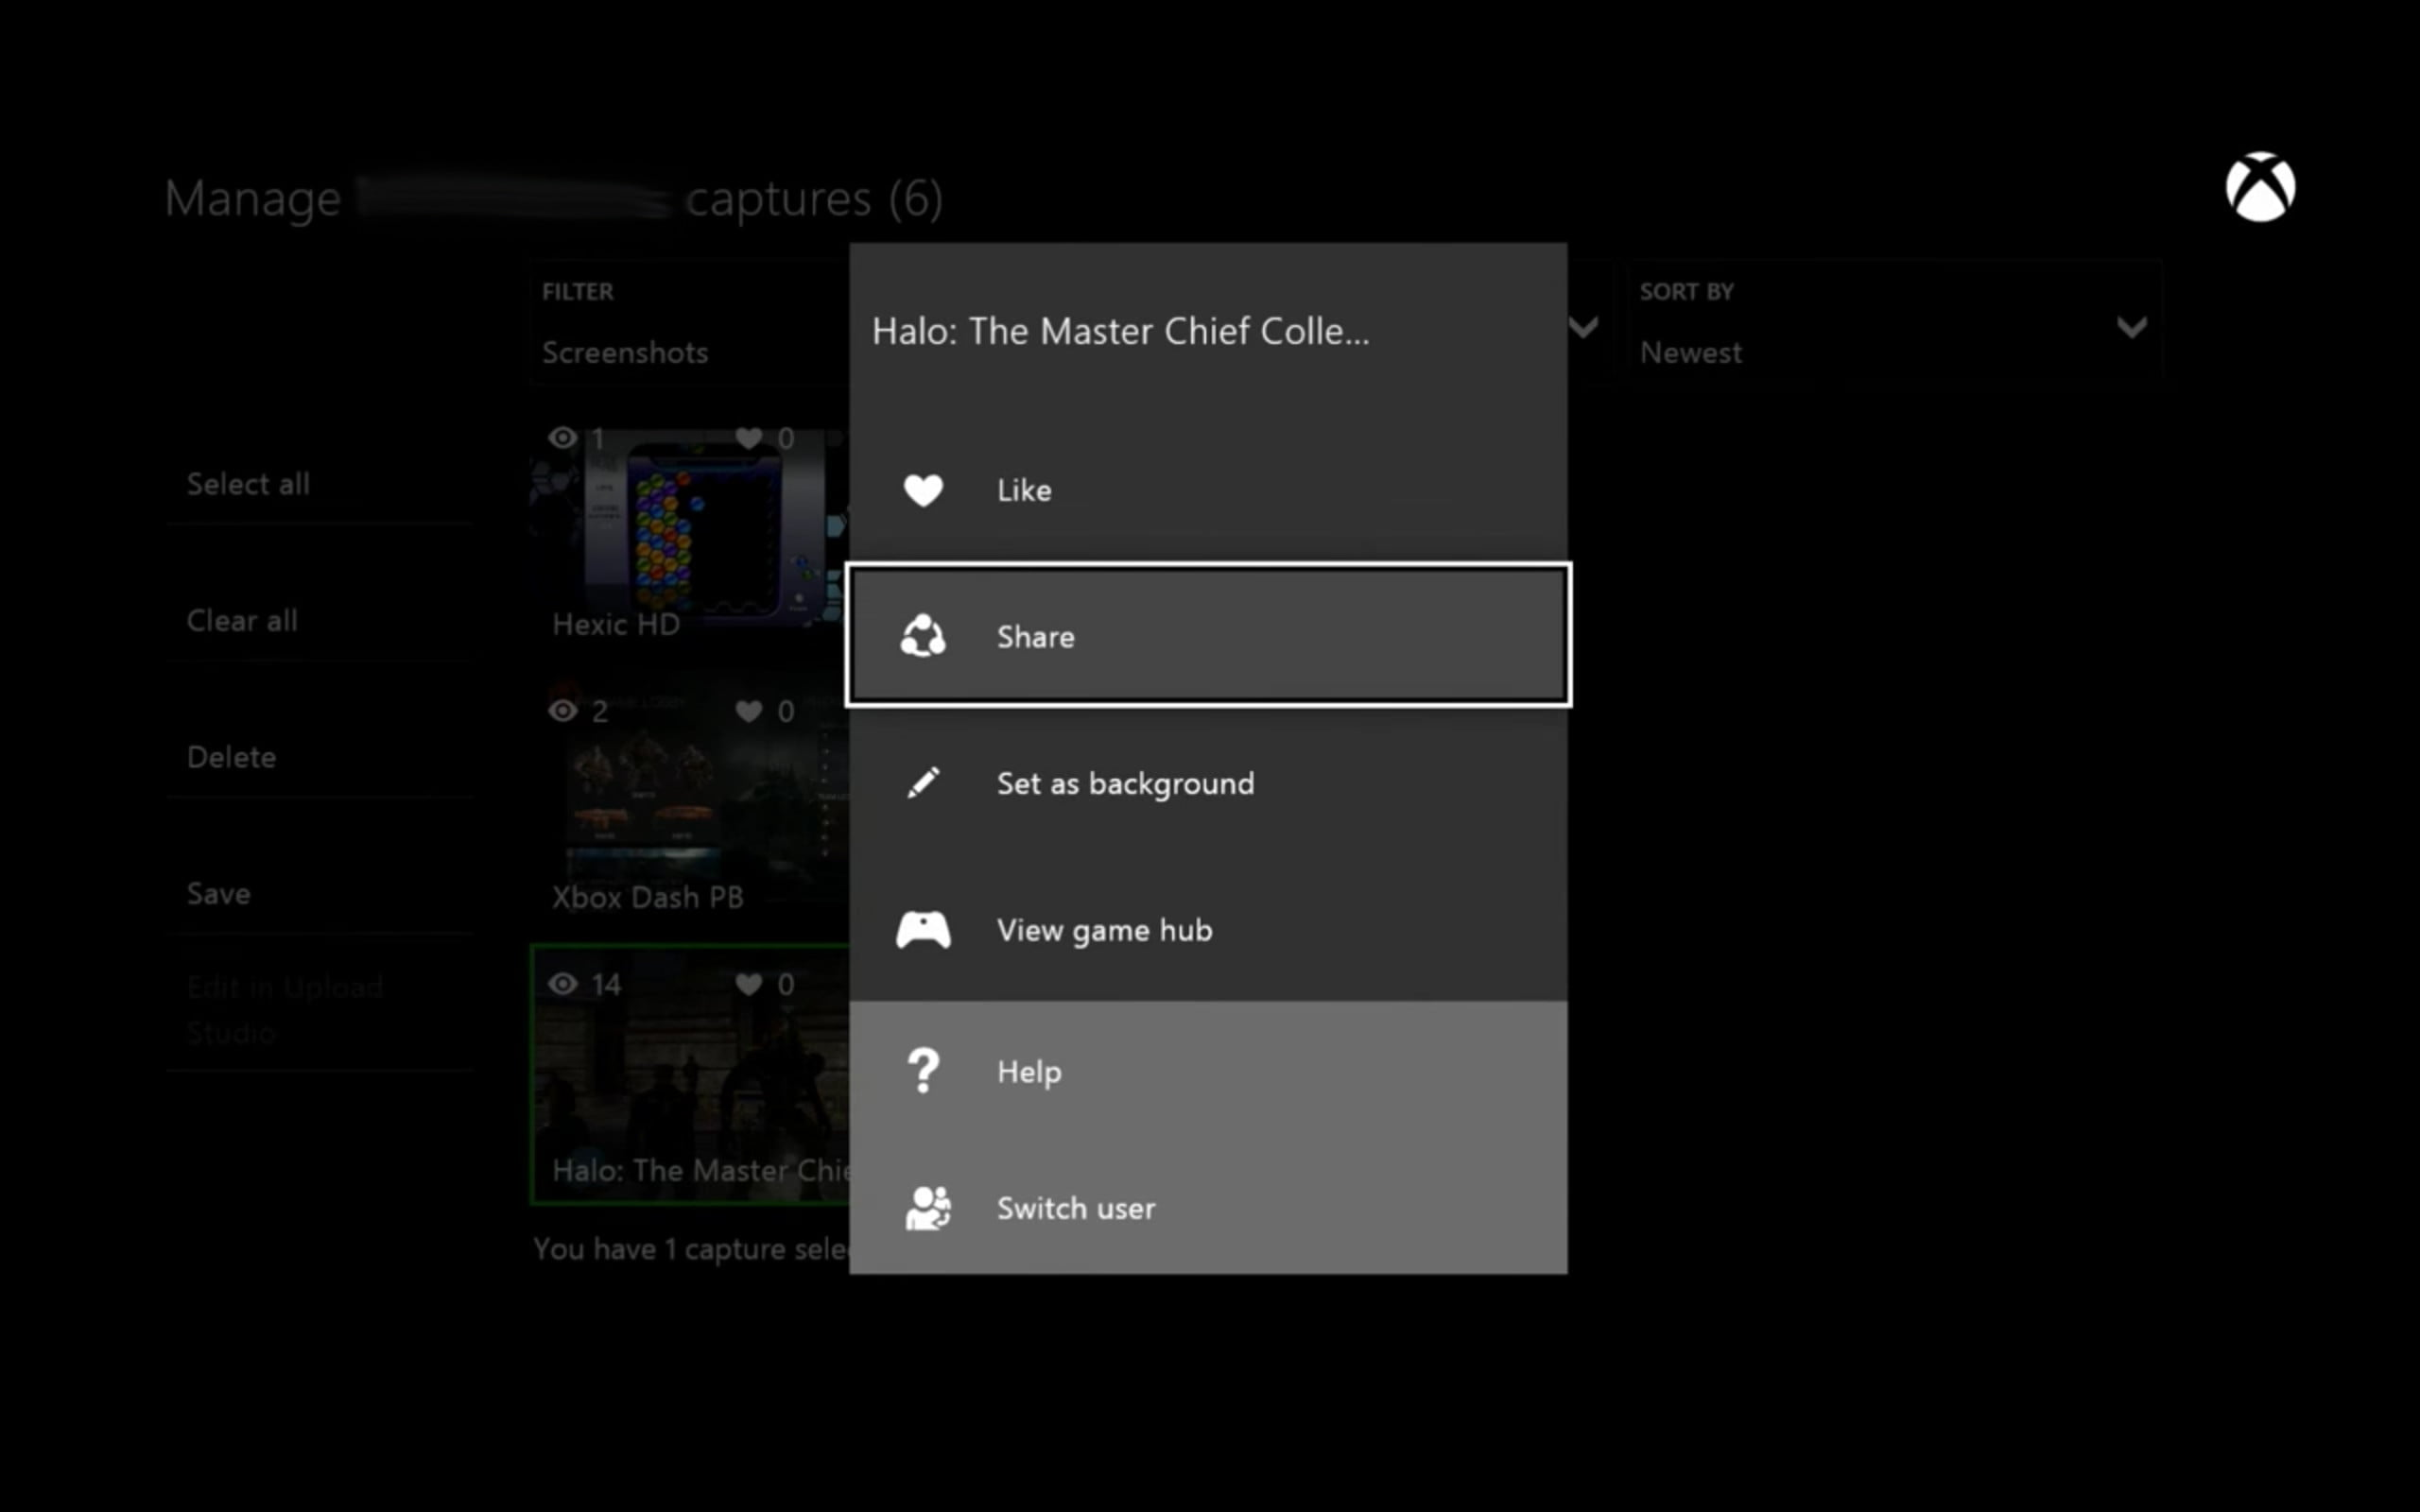 How to Take a Screenshot on an Xbox One or Xbox One S